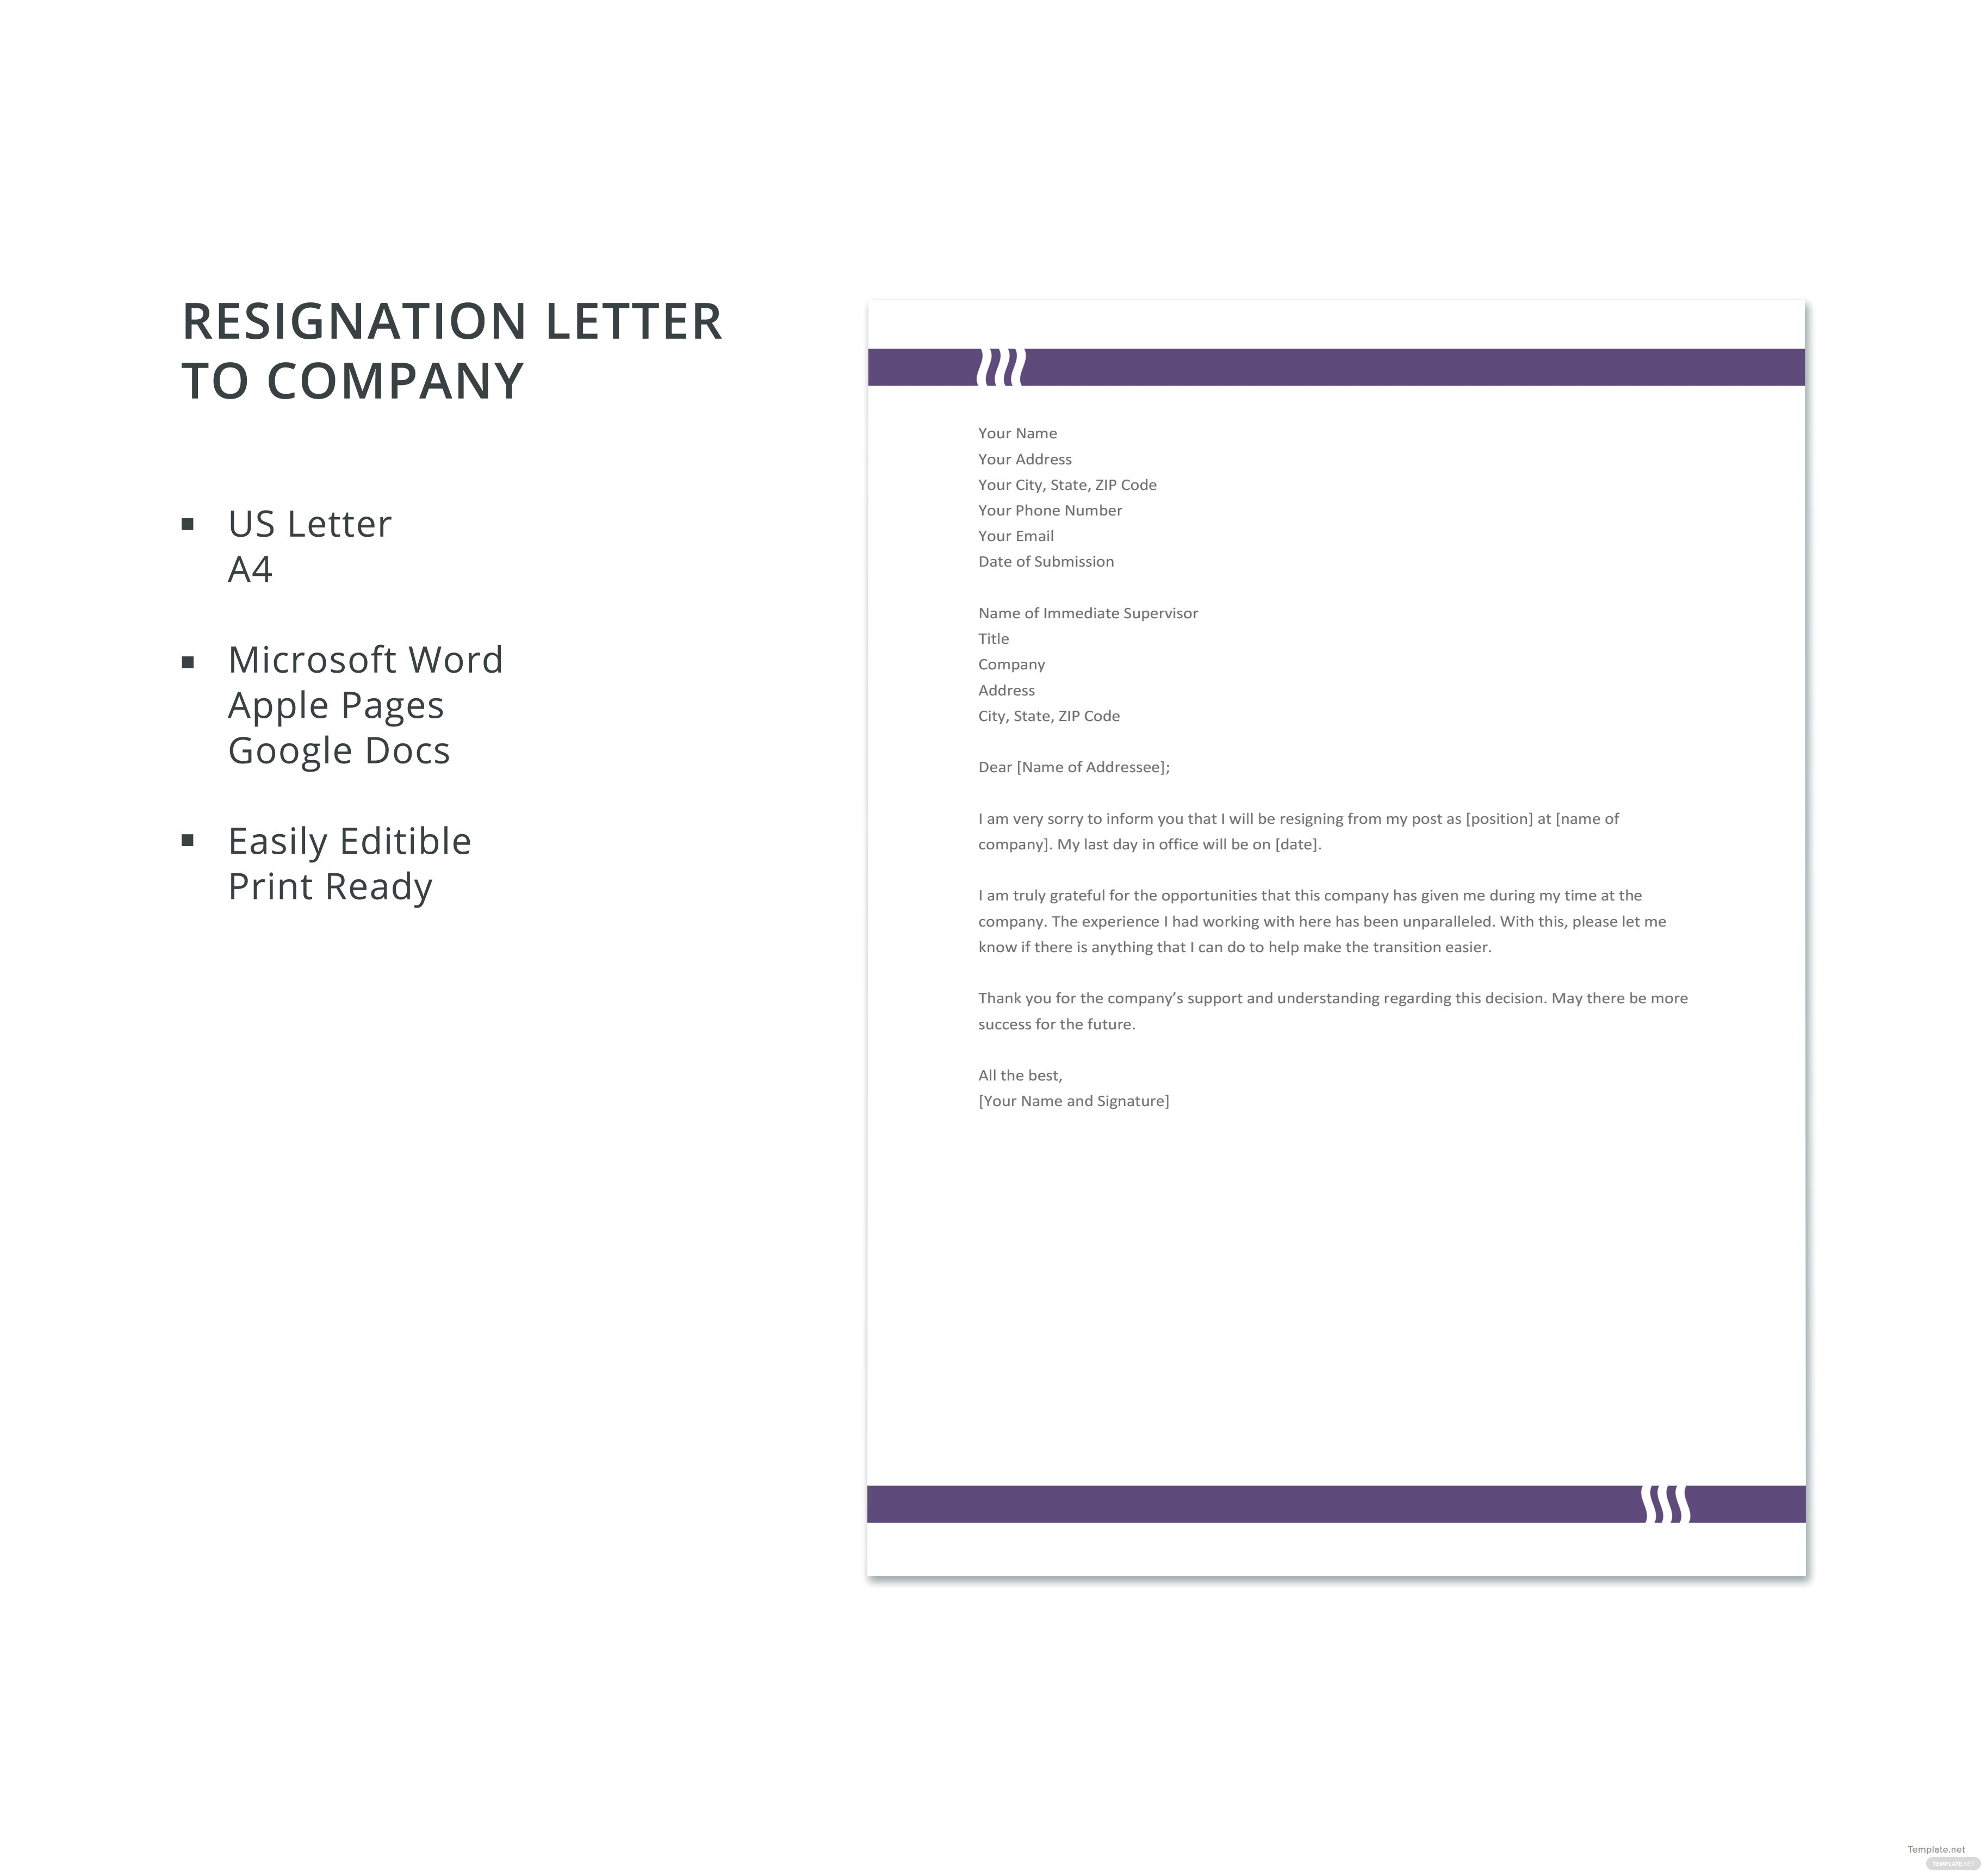 Free resignation letter to company template in microsoft word apple resignation letter to company template spiritdancerdesigns Gallery